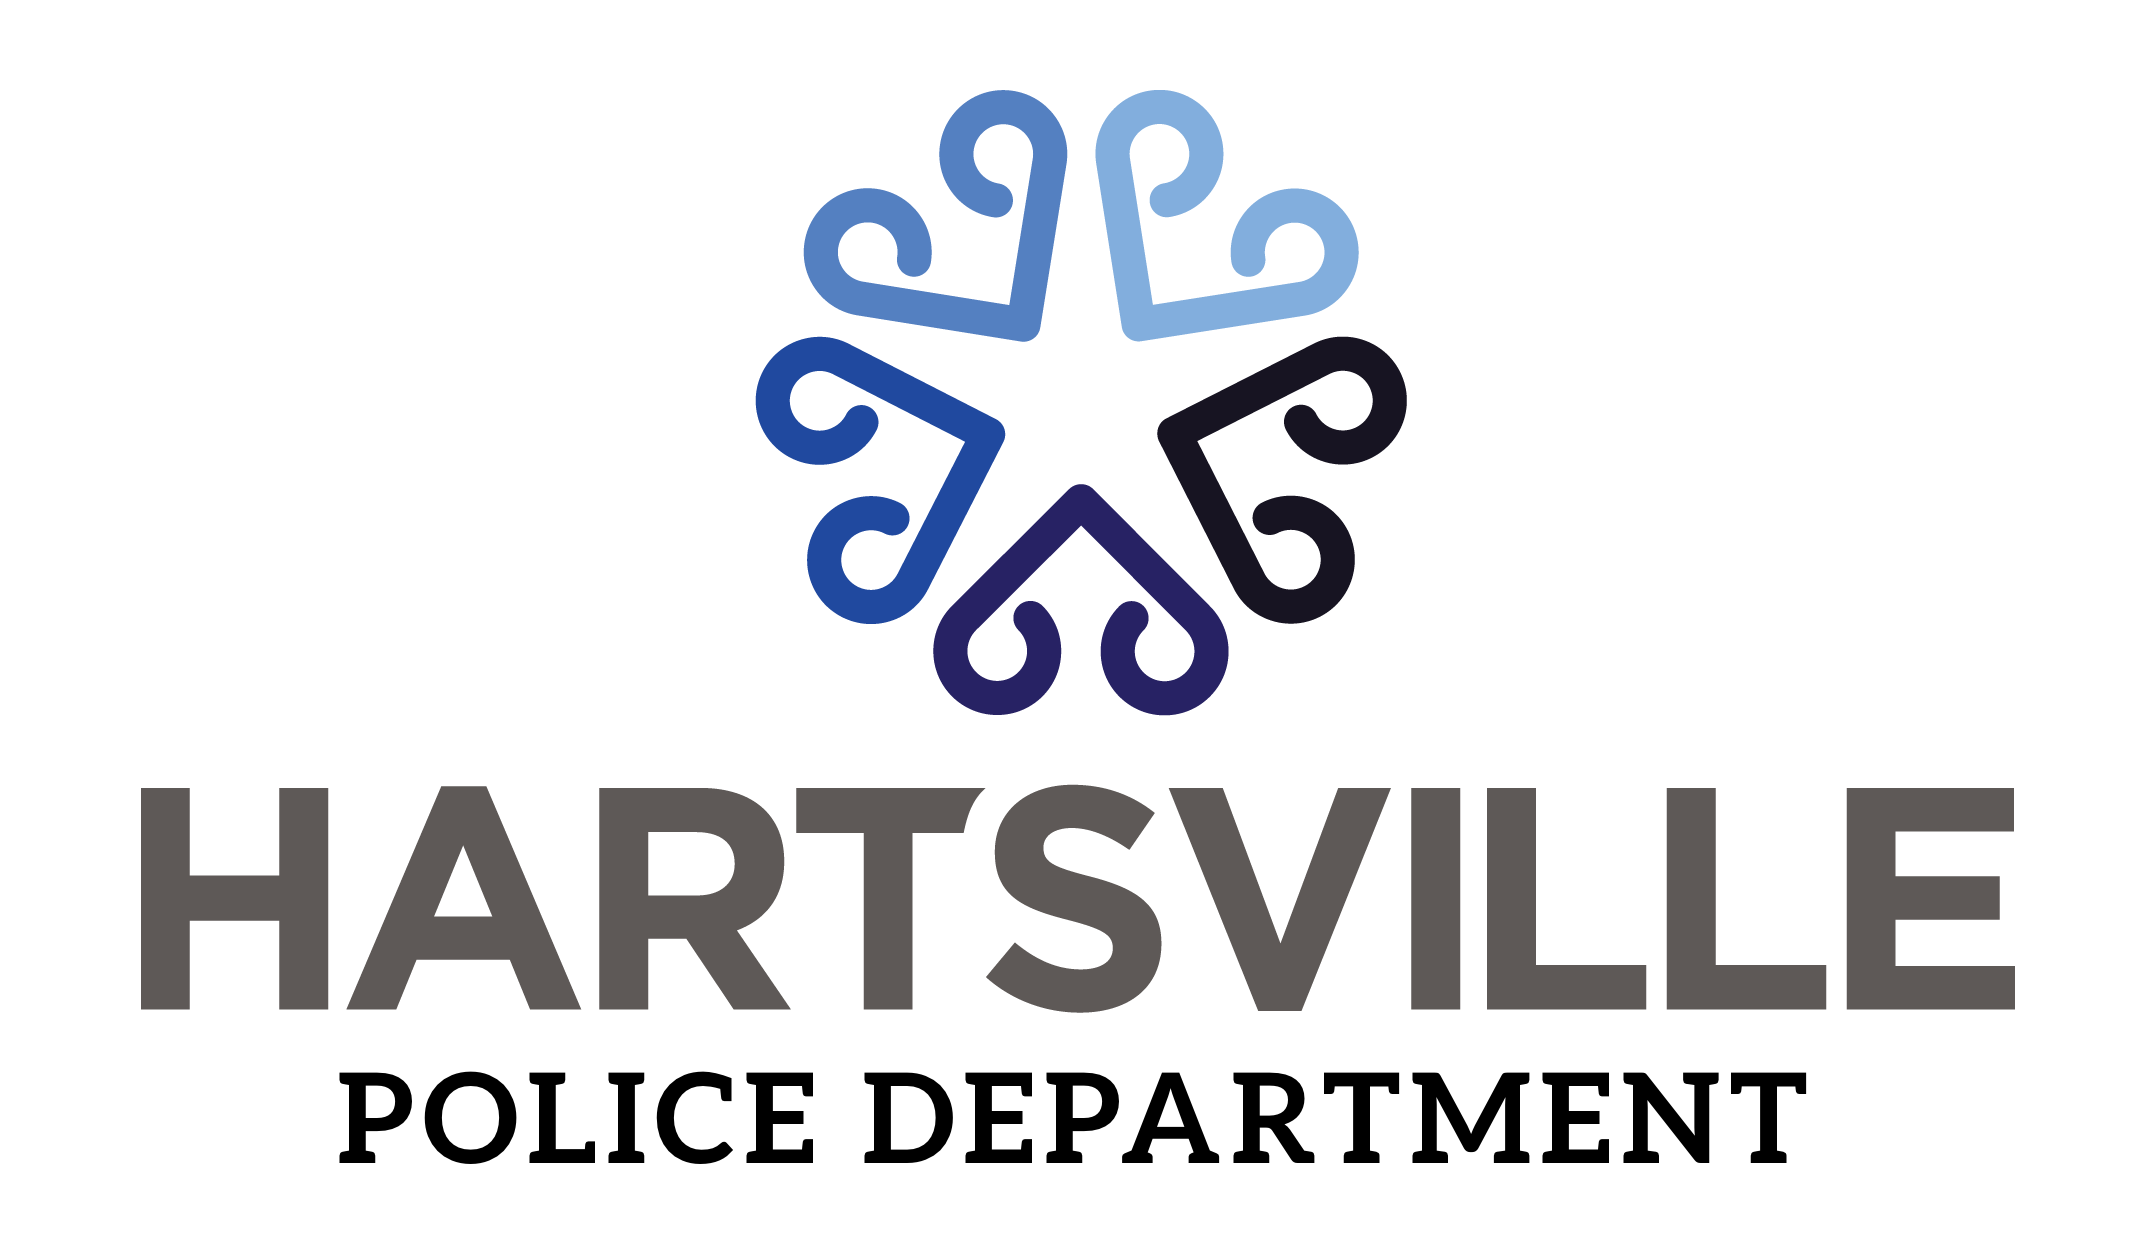 City of Hartsville – Police Department